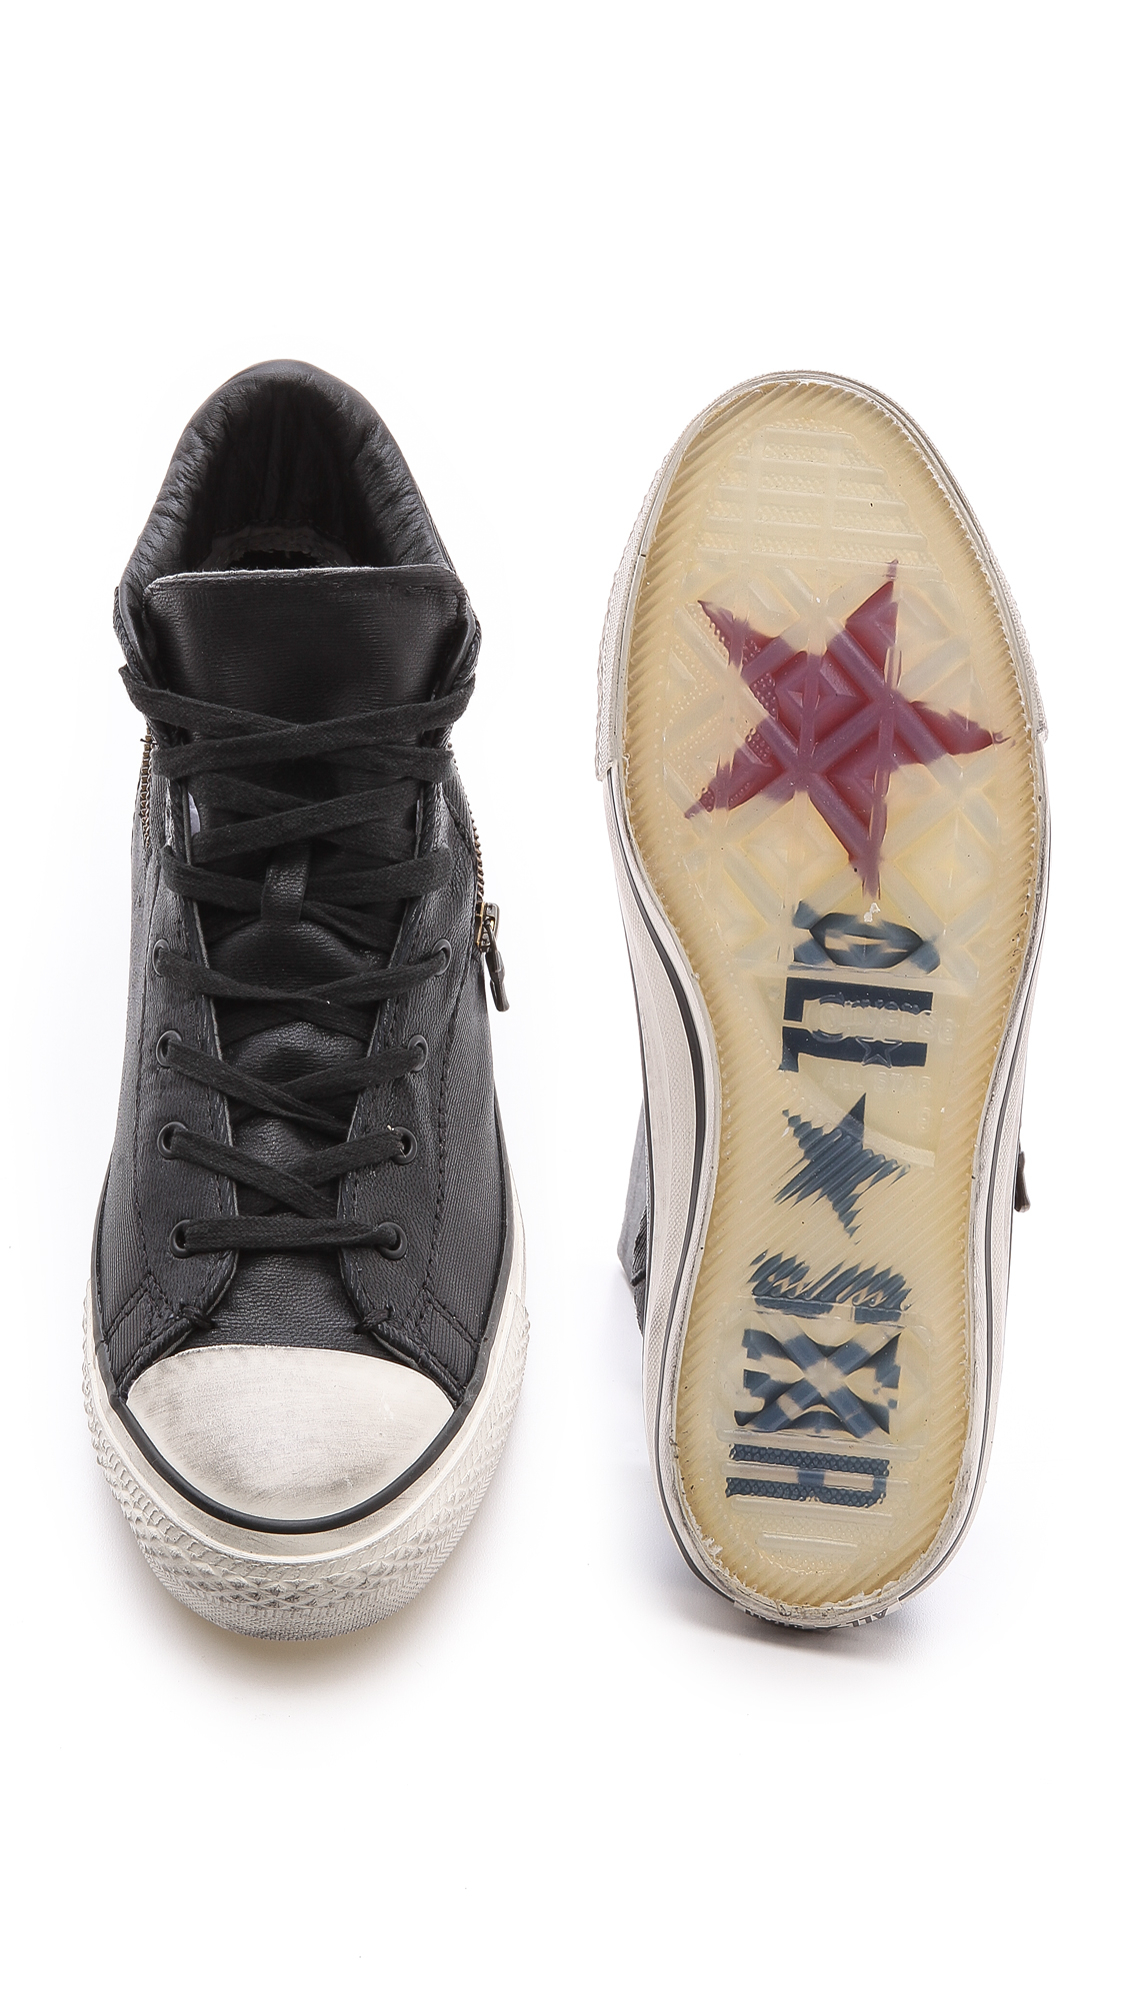 235a3fb51fd73c ... cheapest lyst converse jv all star zip sneakers in black for men 94866  6fbbd